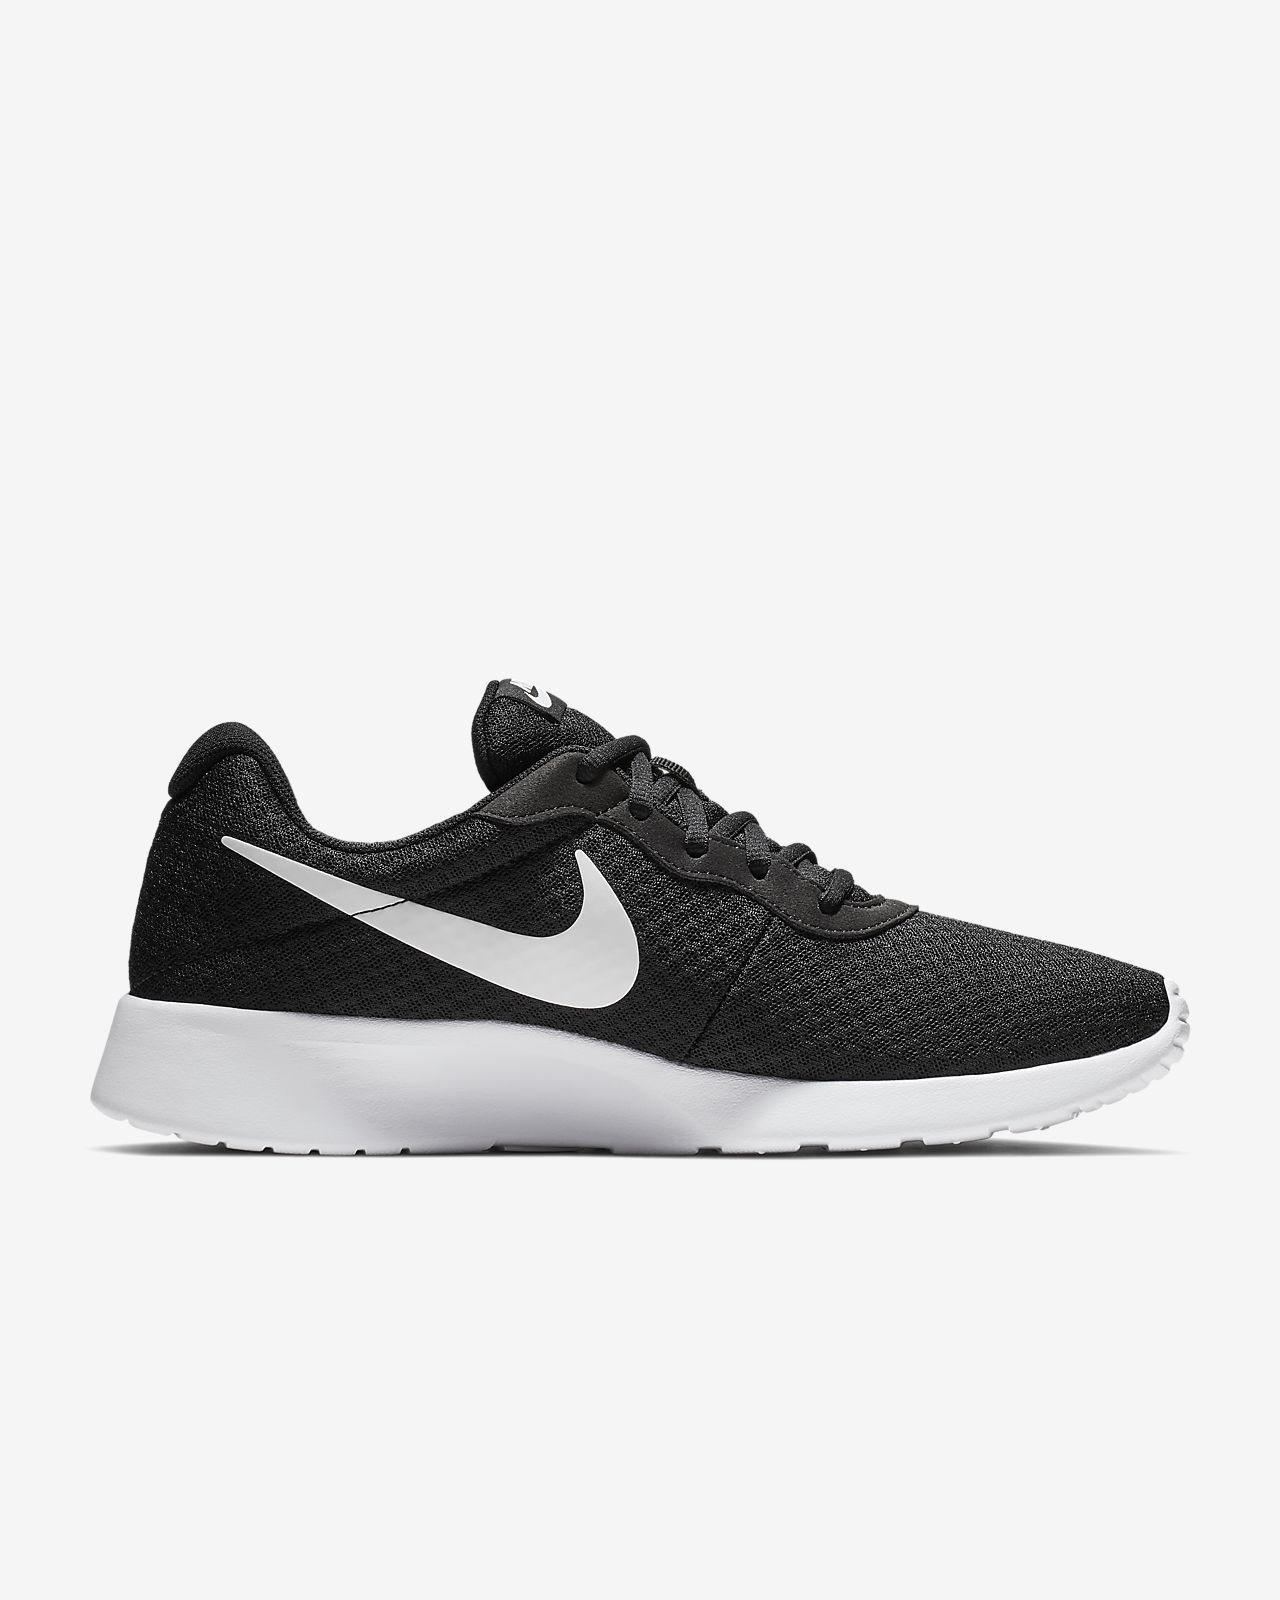 530b5c4763d4 Low Resolution Nike Tanjun Men s Shoe Nike Tanjun Men s Shoe